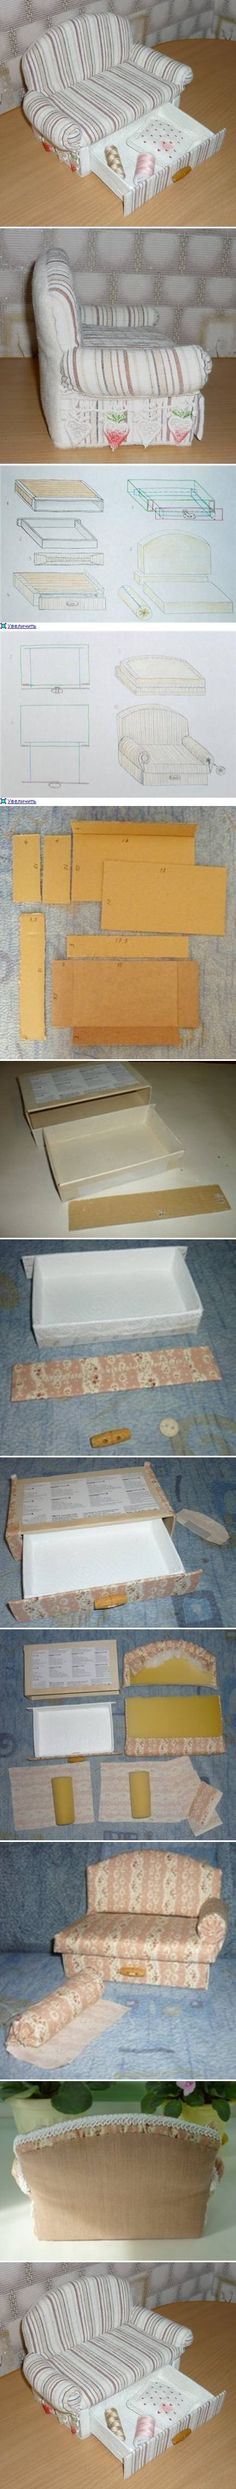 DIY Cardboard Sofa with Drawer